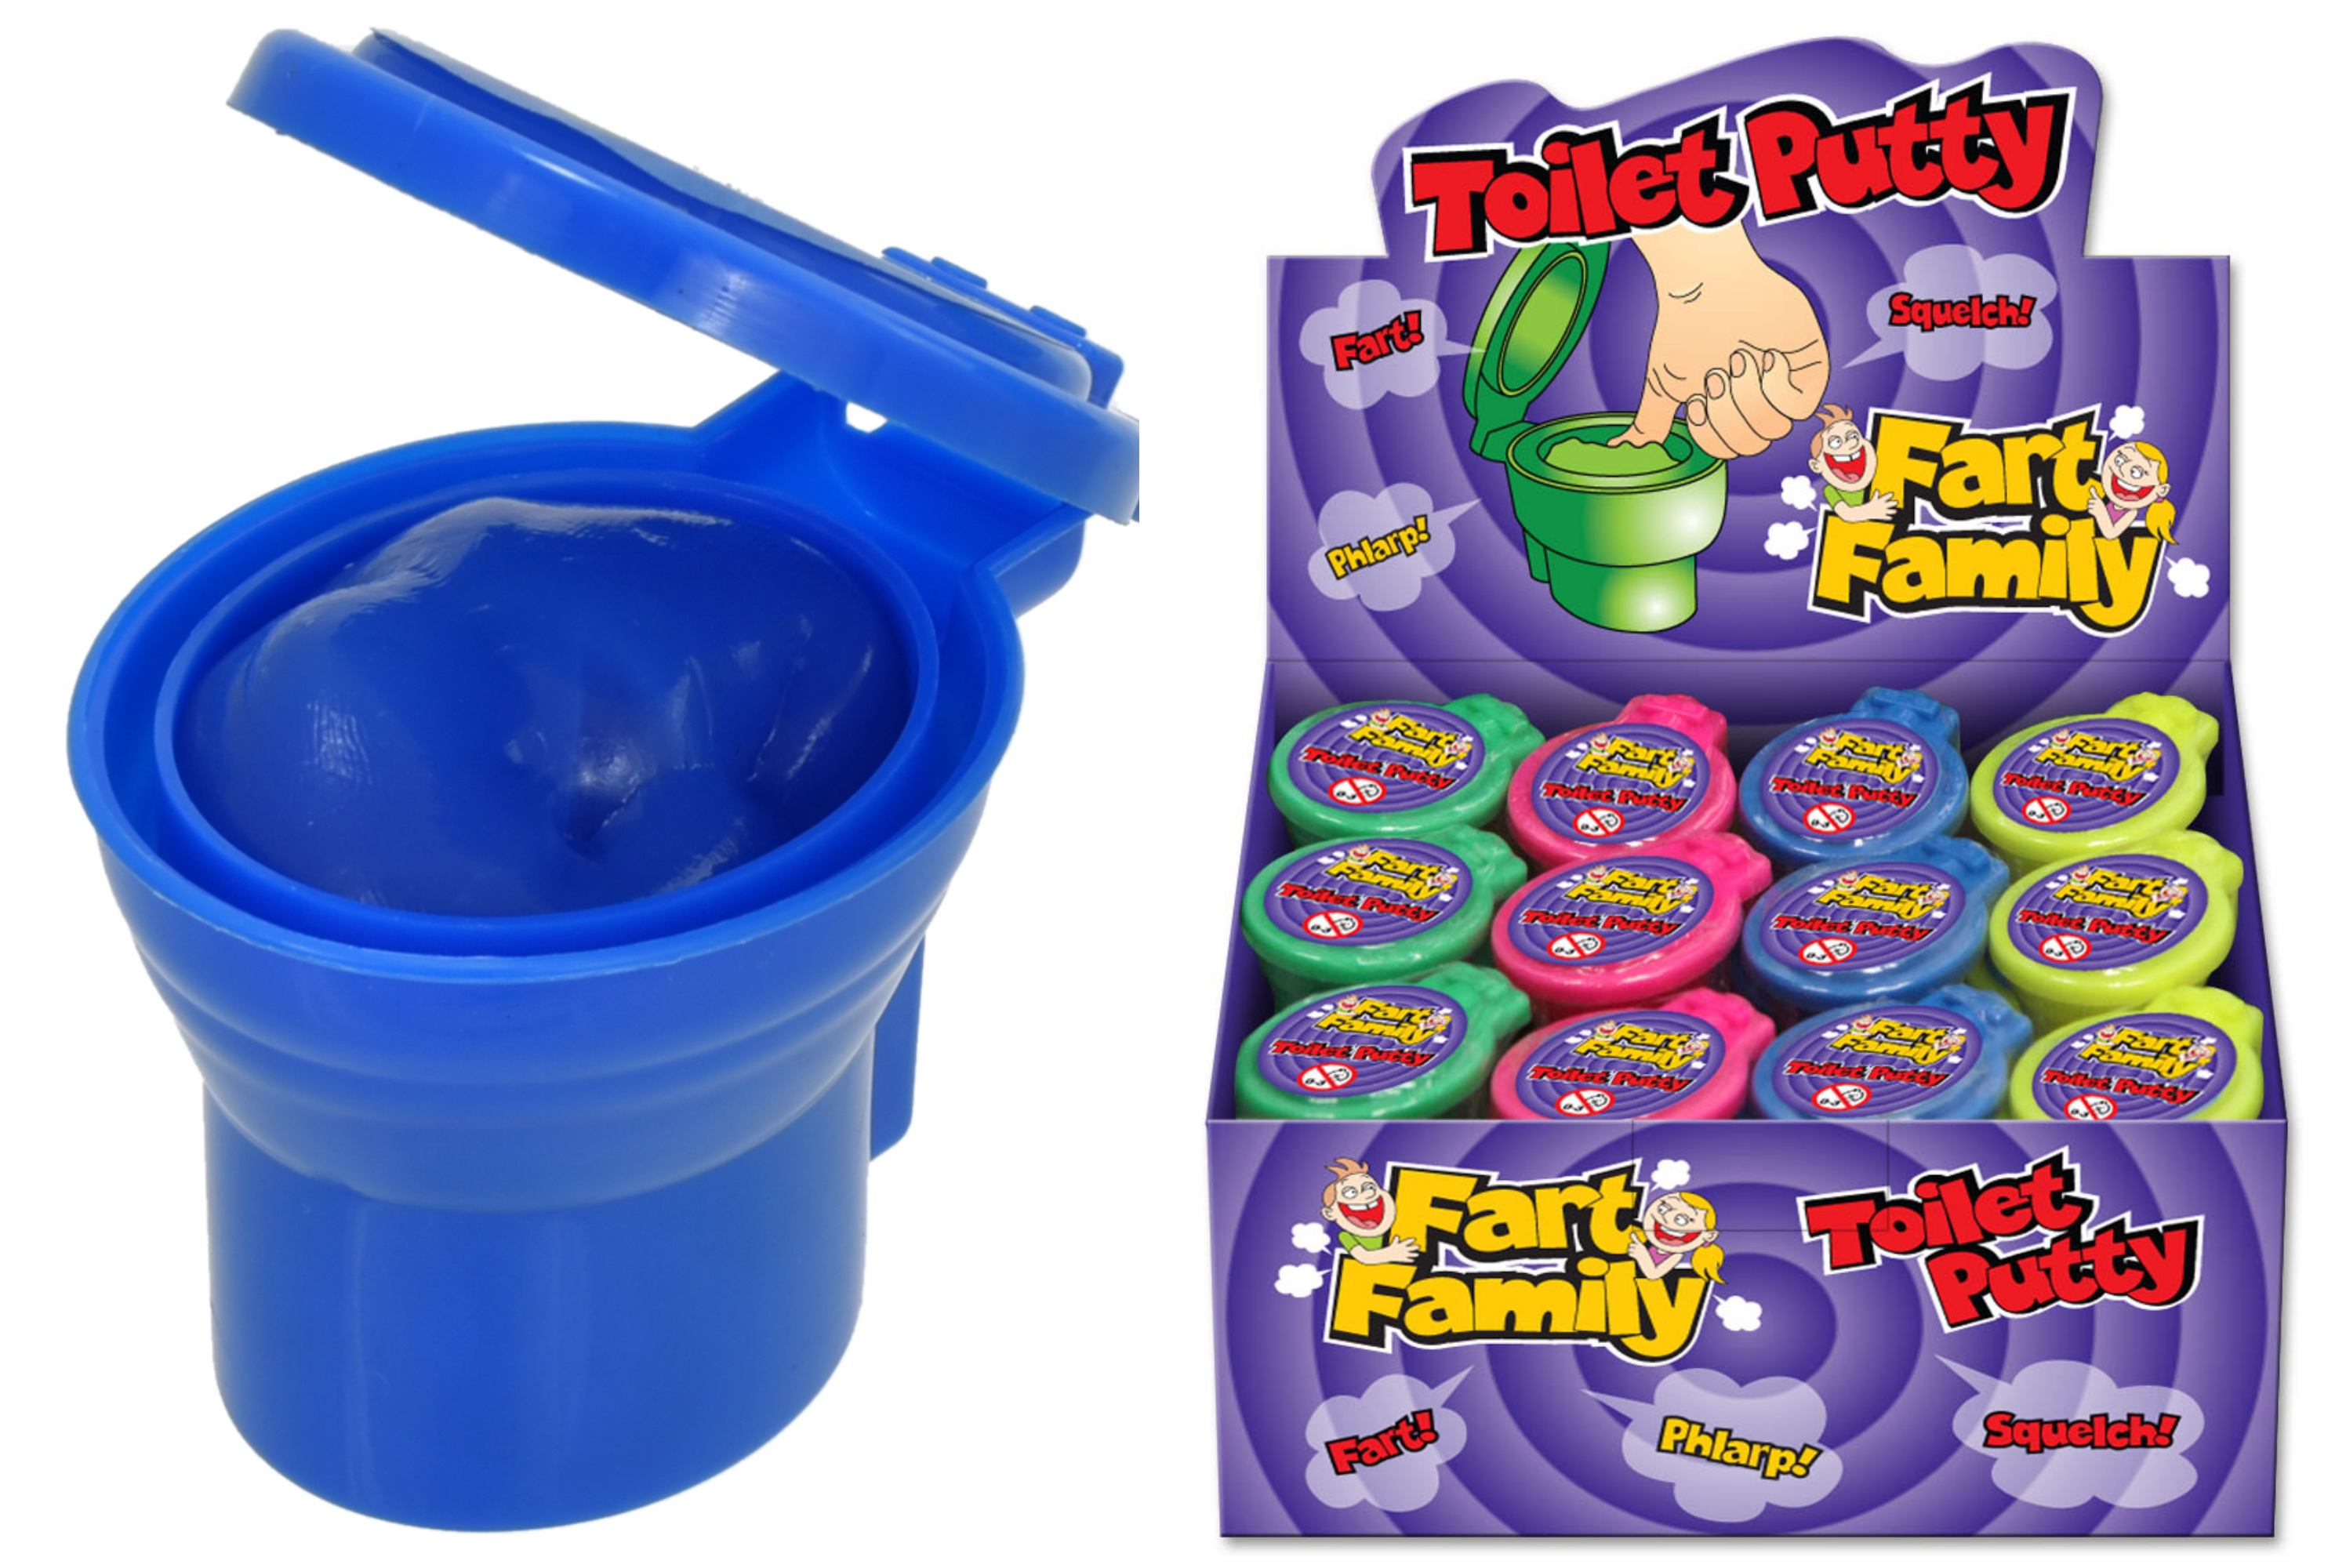 Small Toilet Putty (35g) In Display Box